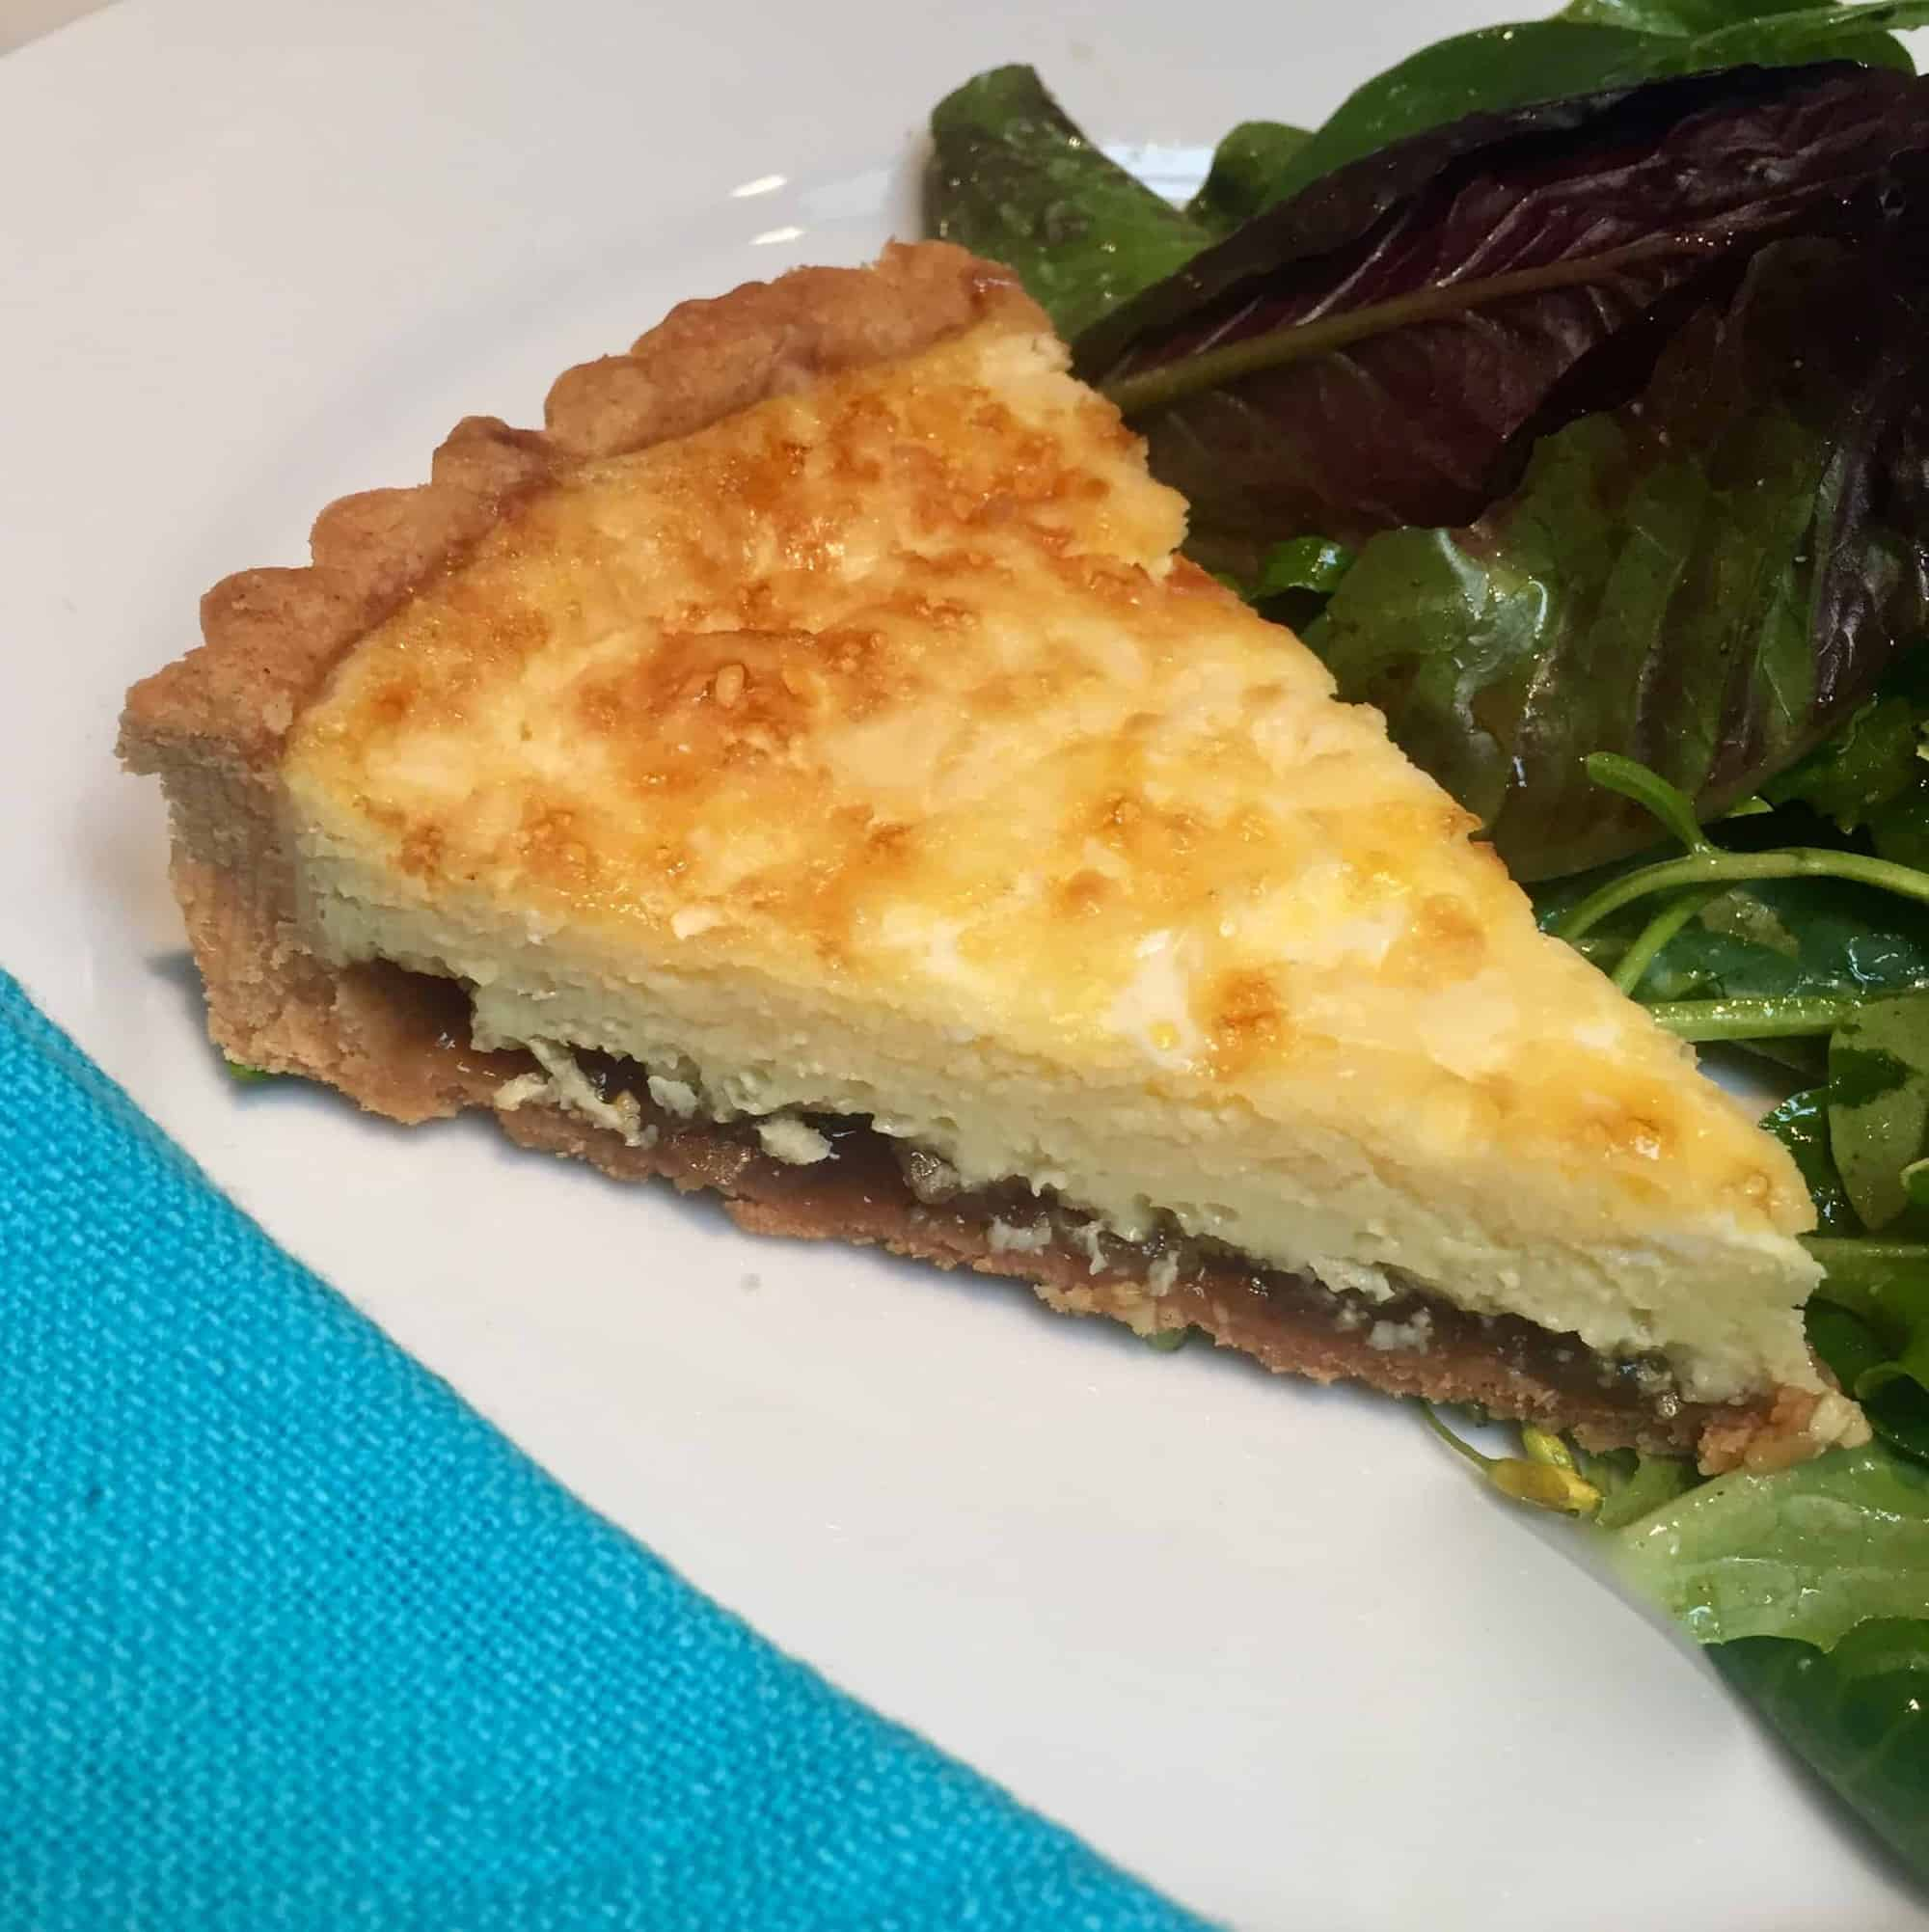 Ploughman's Cheddar and Onion Marmalade Tart